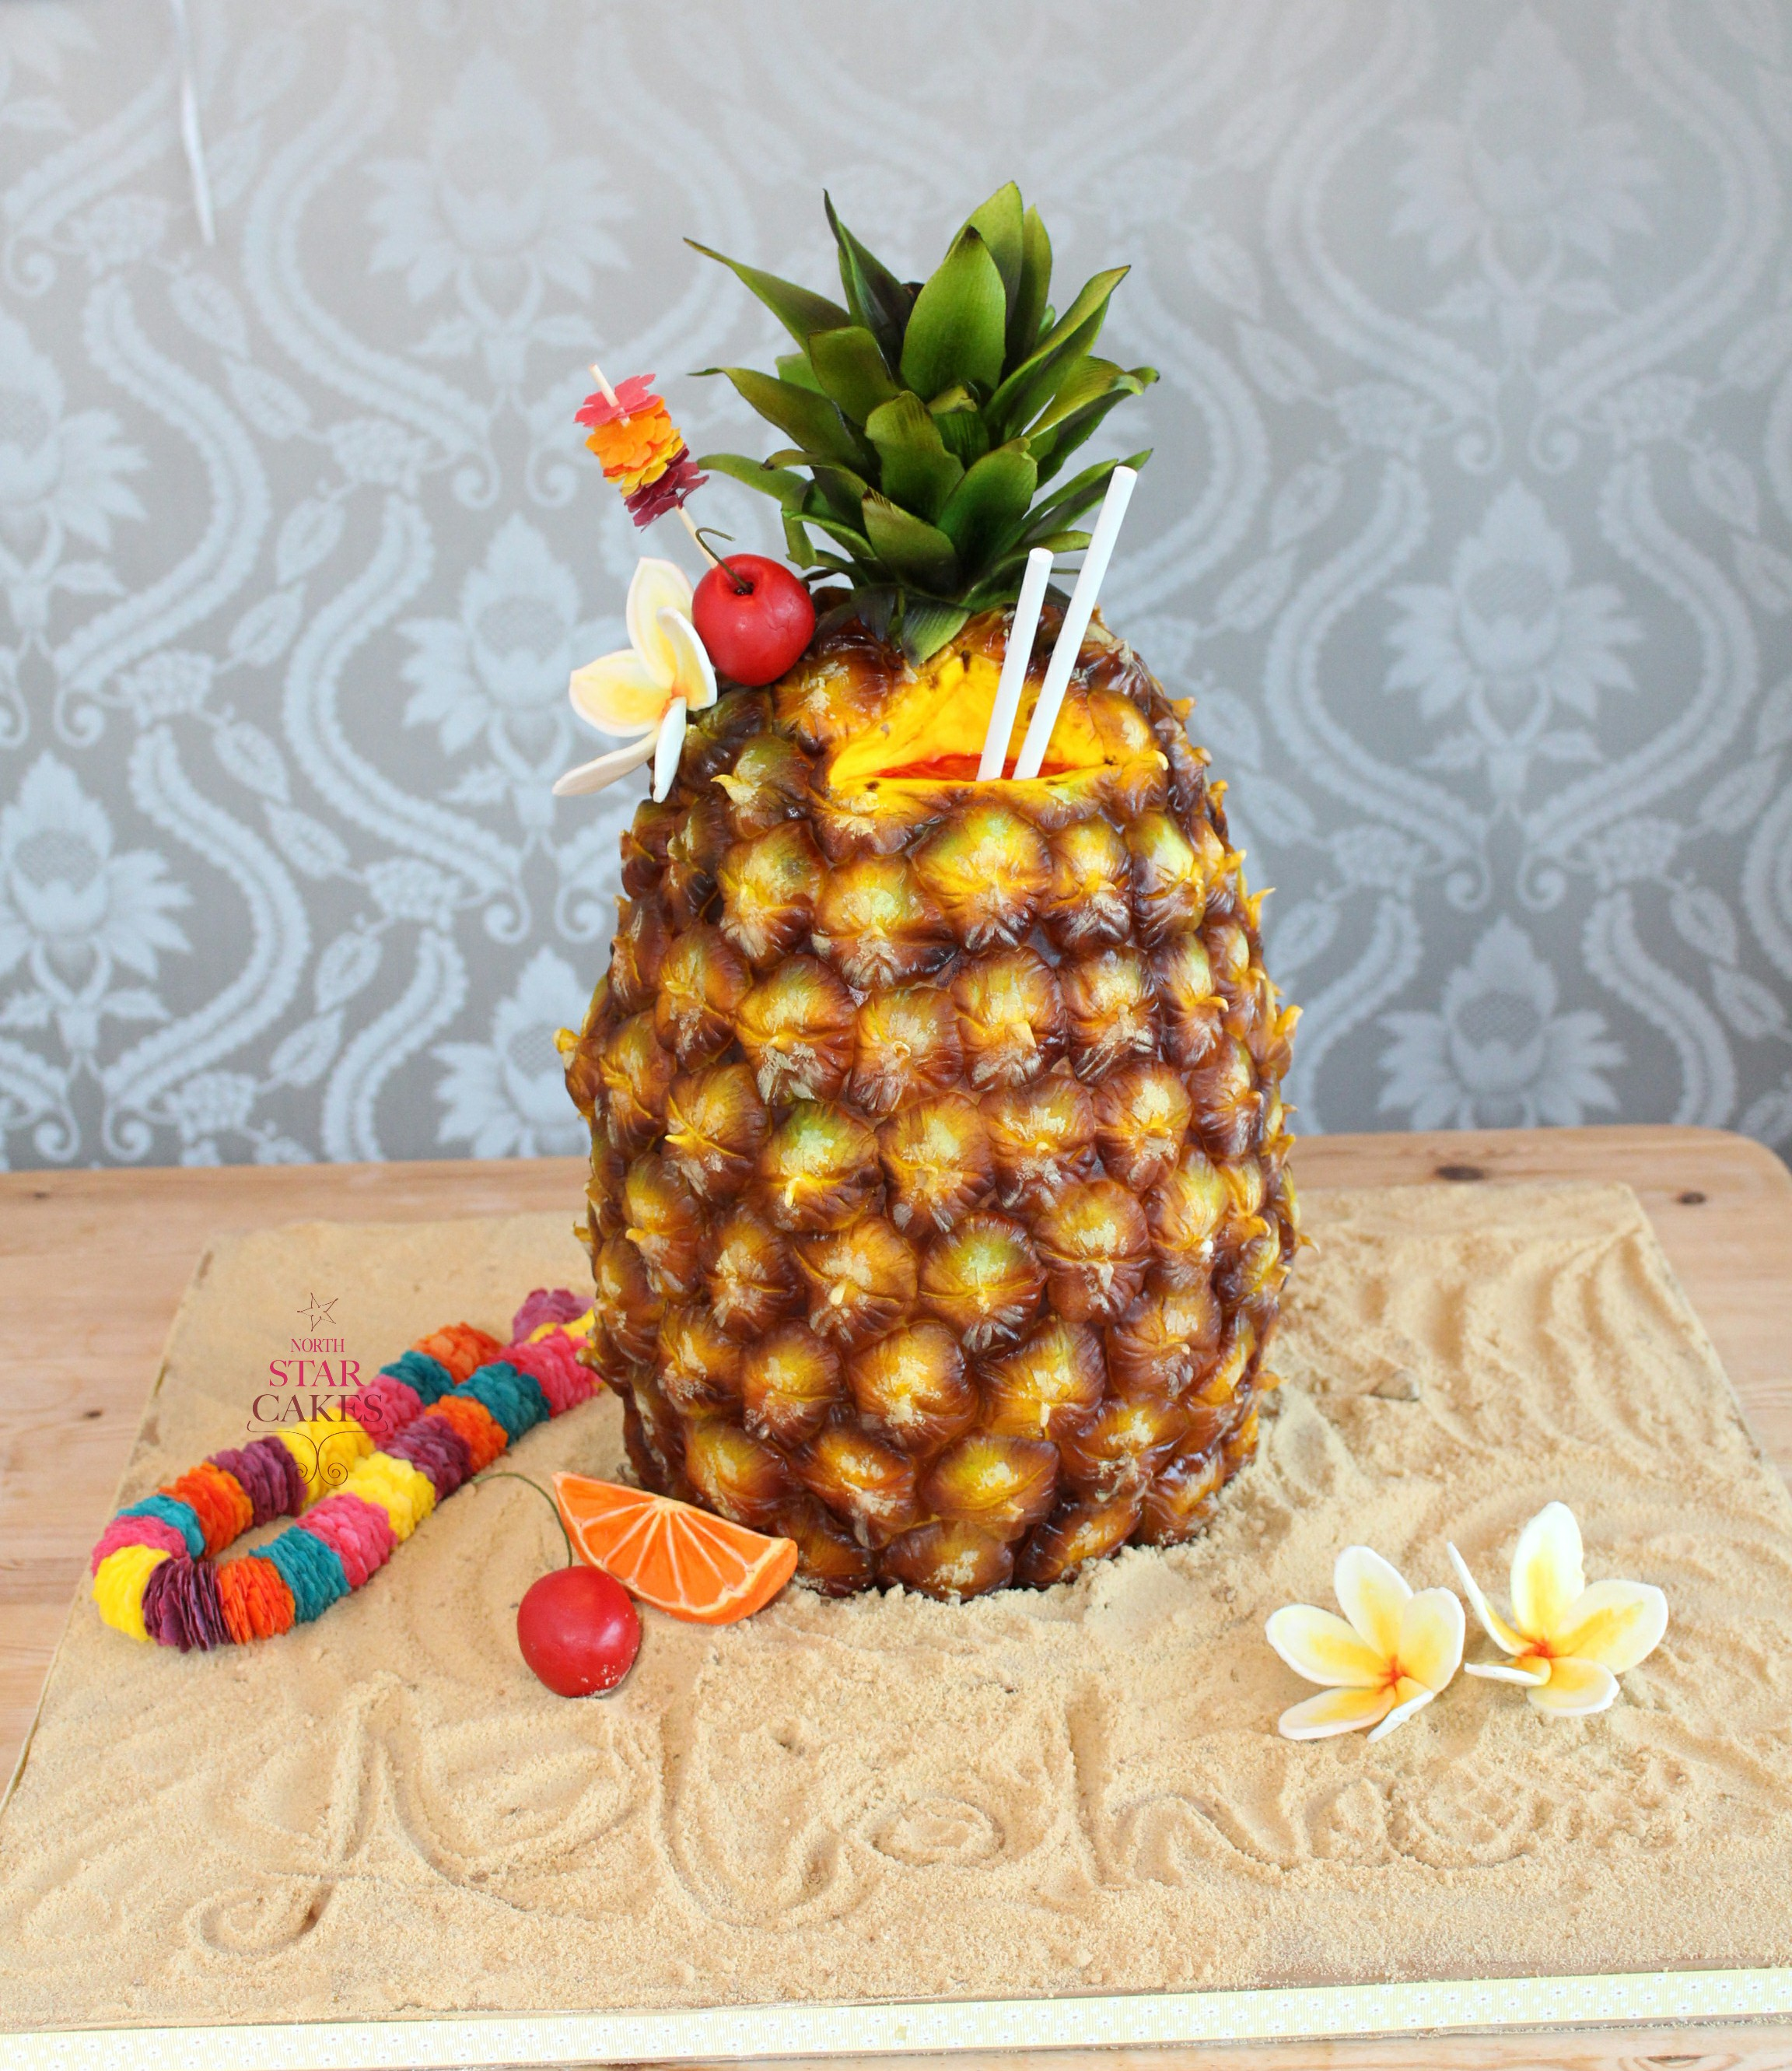 pineapple shaped cake cakebomb edible cake and edible exhibits 6546